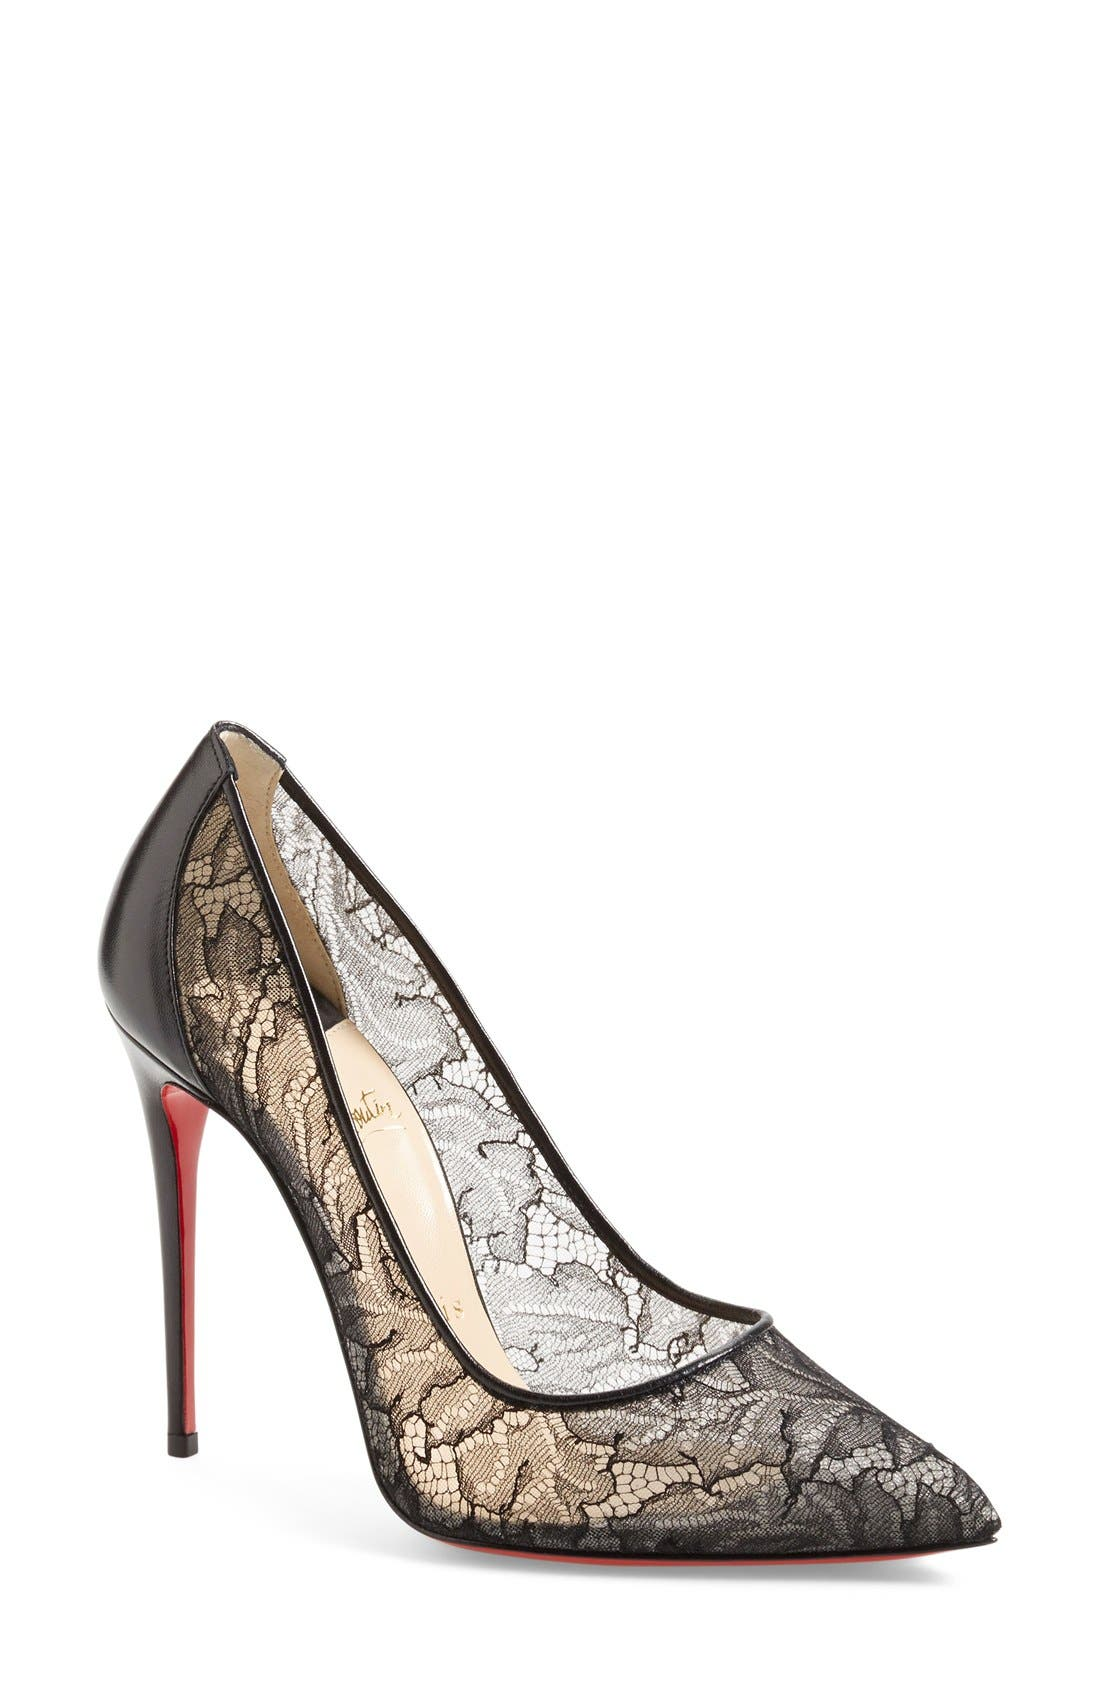 'Follies' Lace Pointy Toe Pump, Main, color, 001